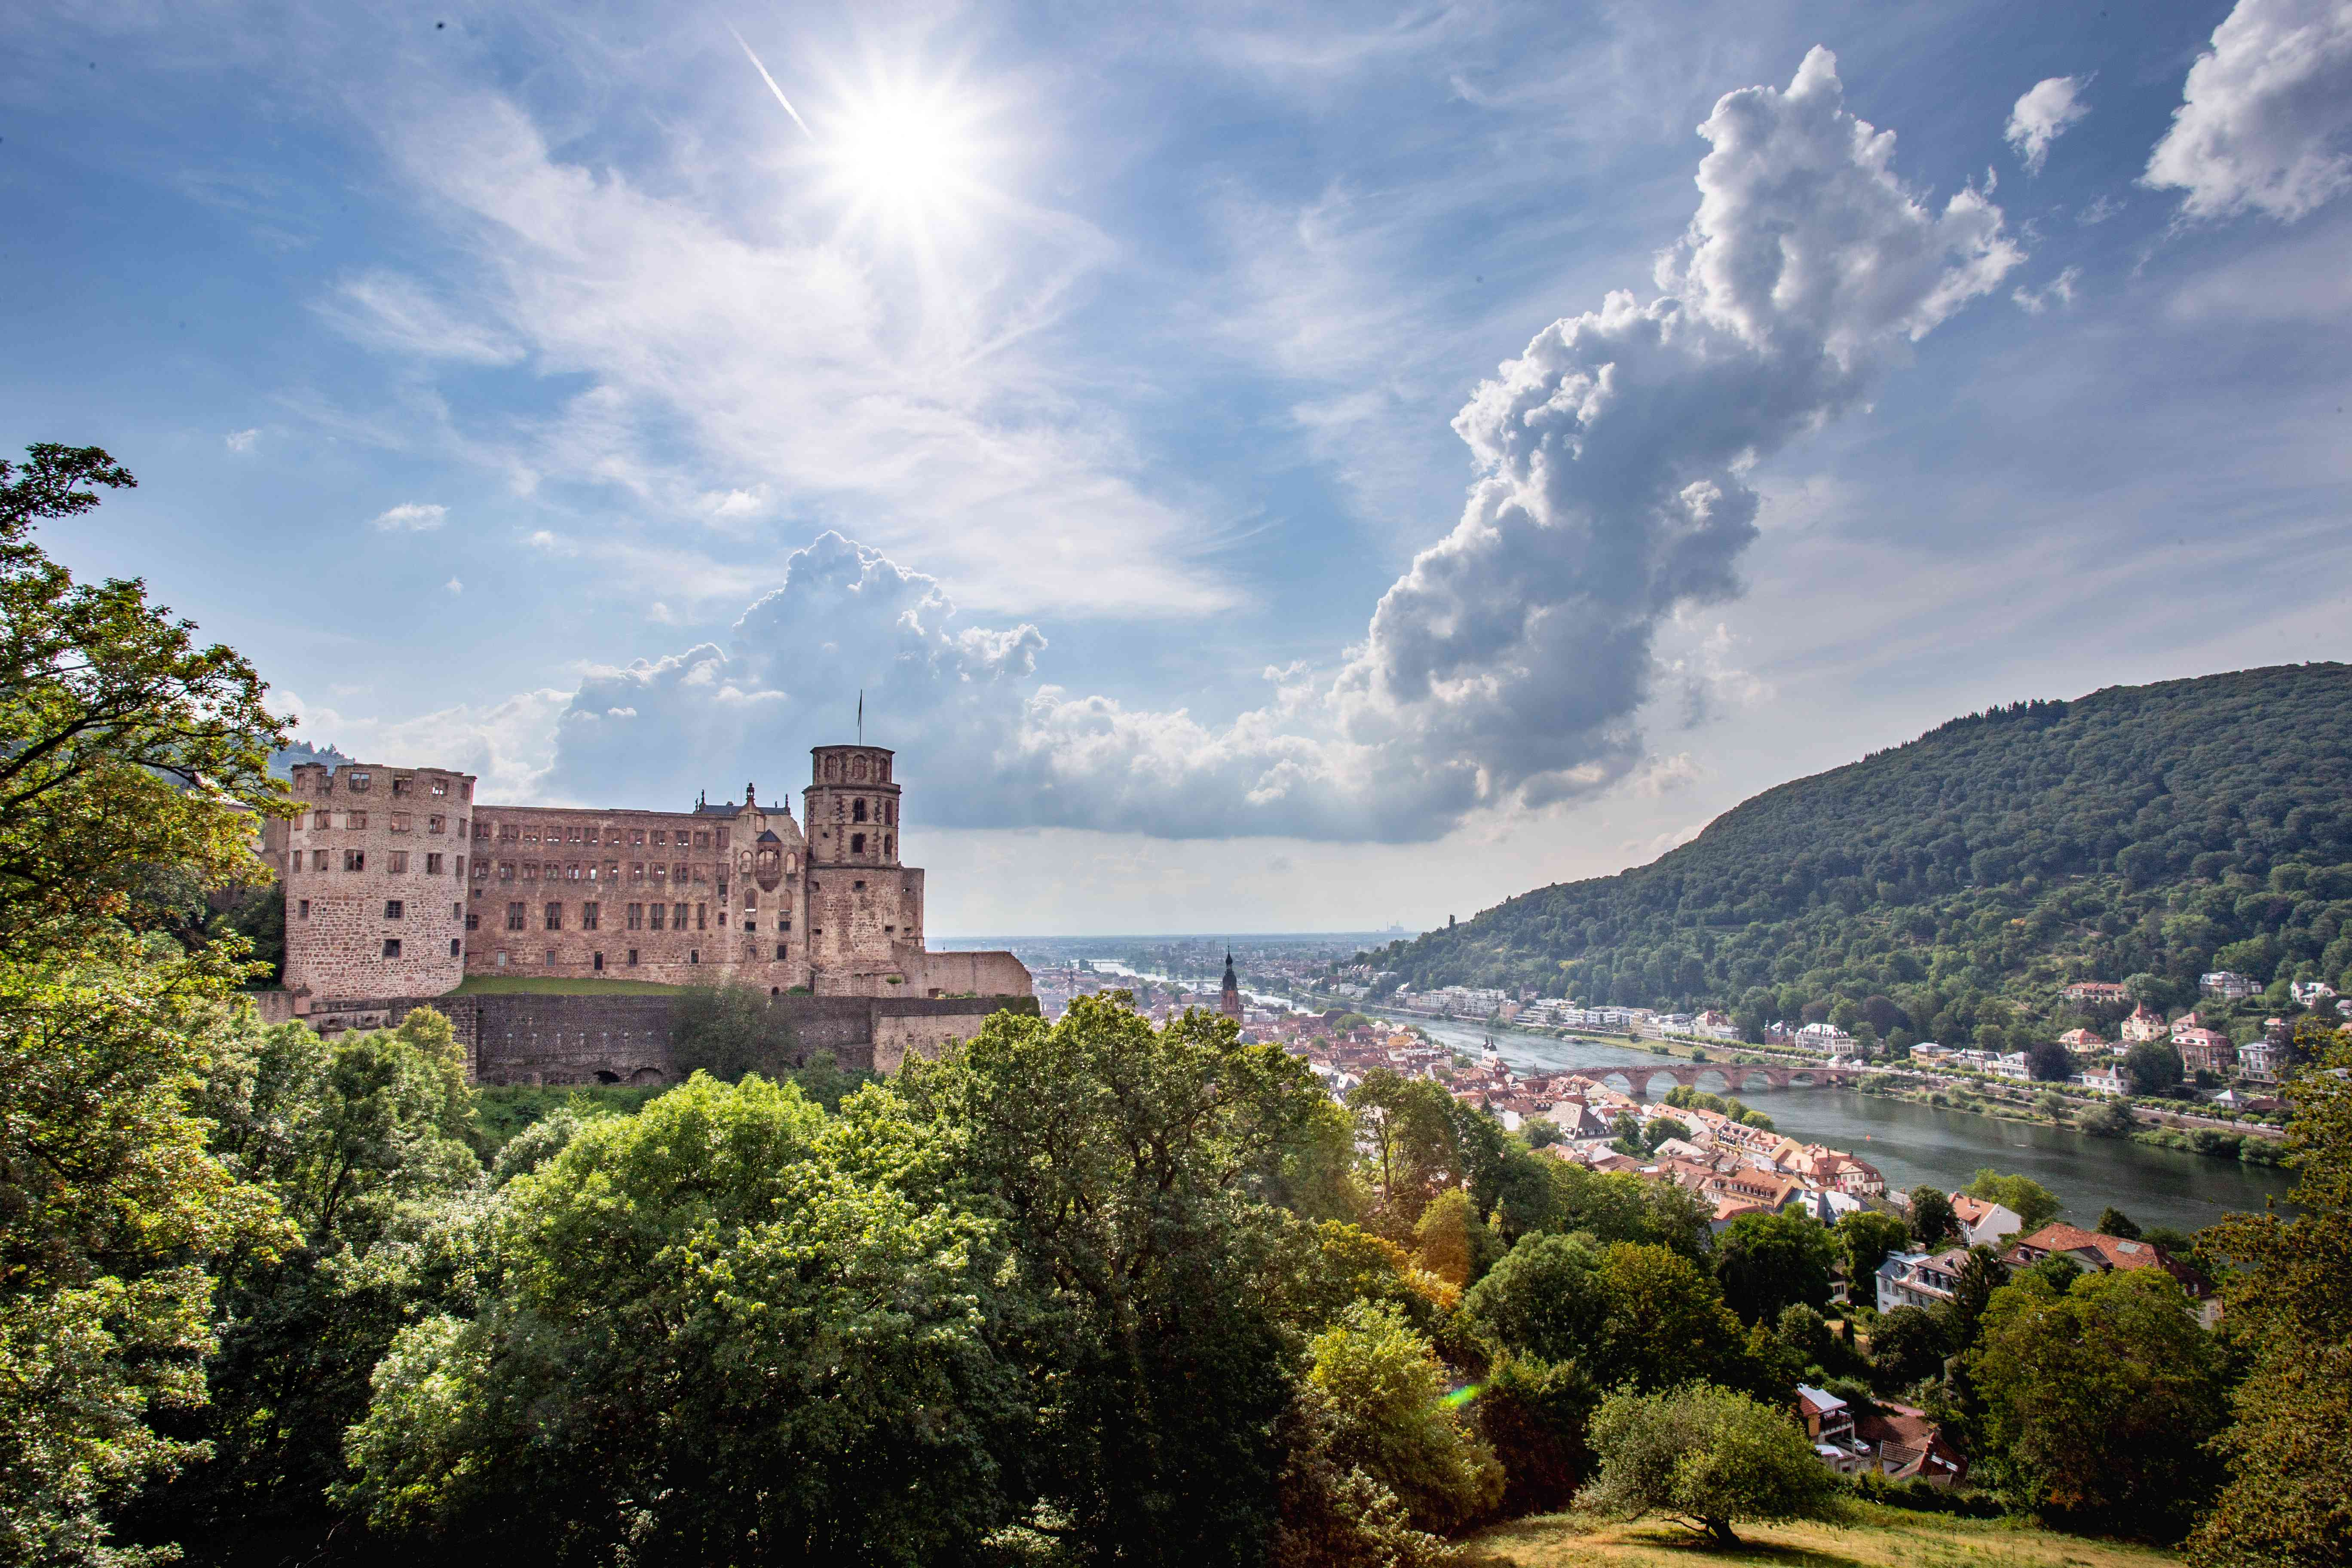 View of Heidelberg on a hill overlooking the river